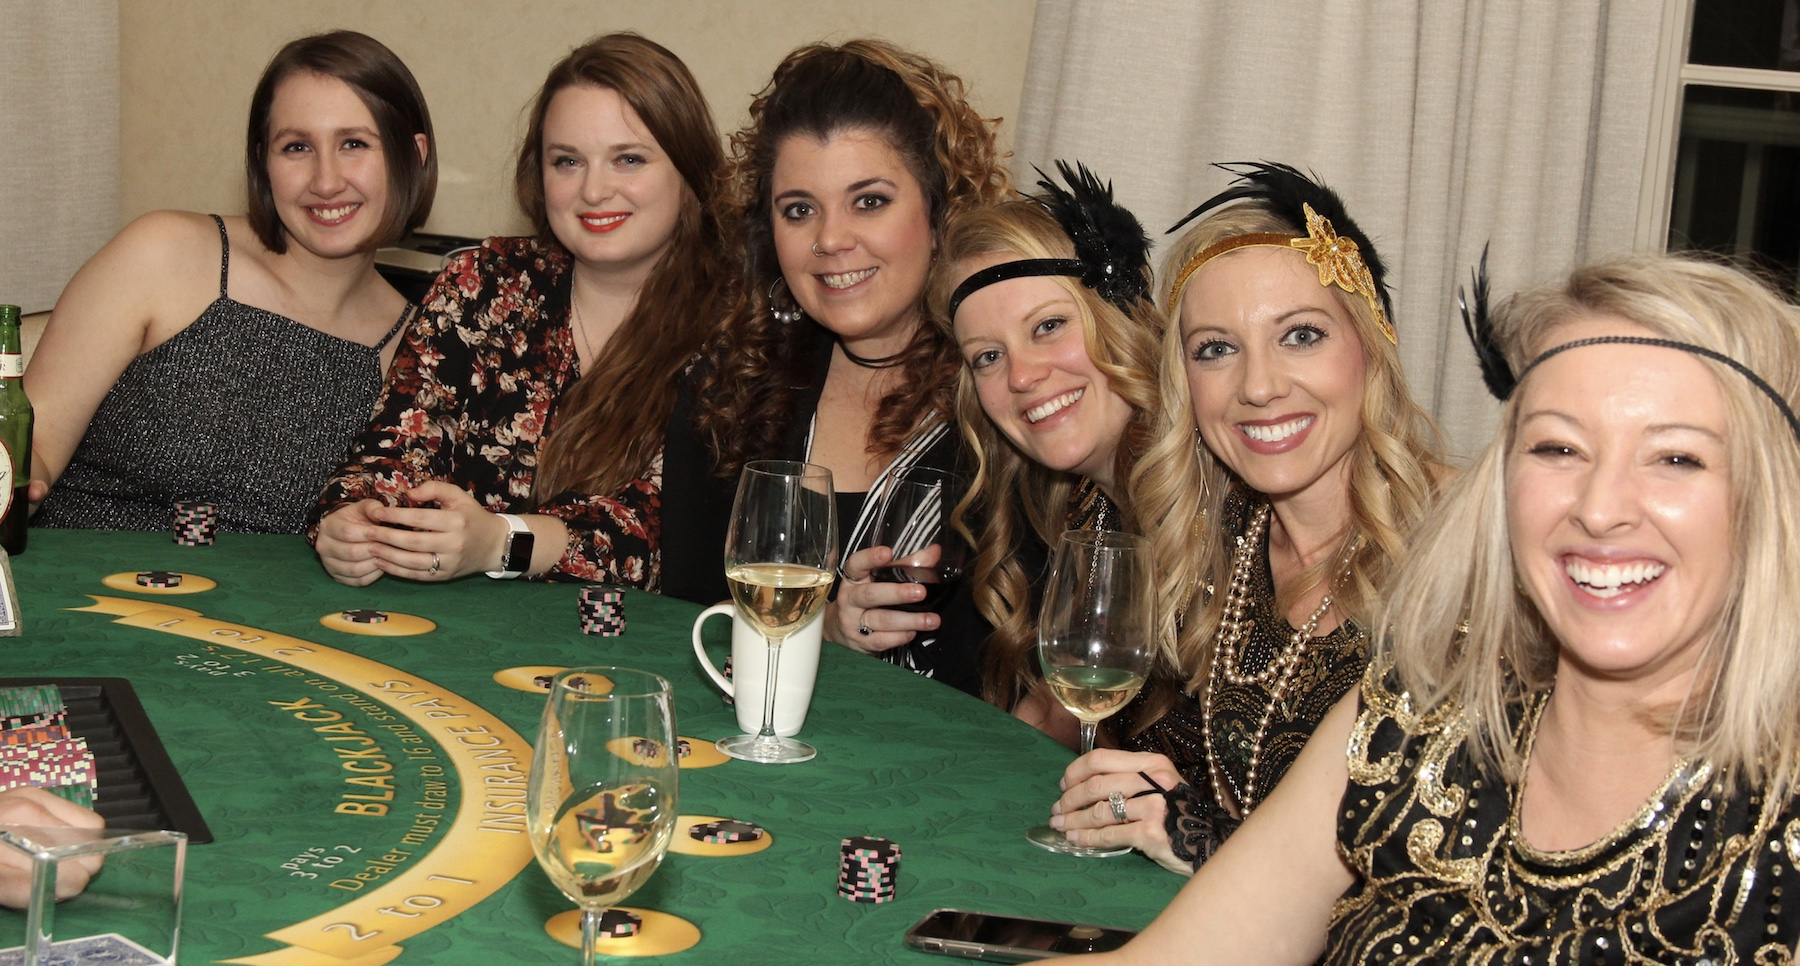 Beautiful Flappers and Blackjack!